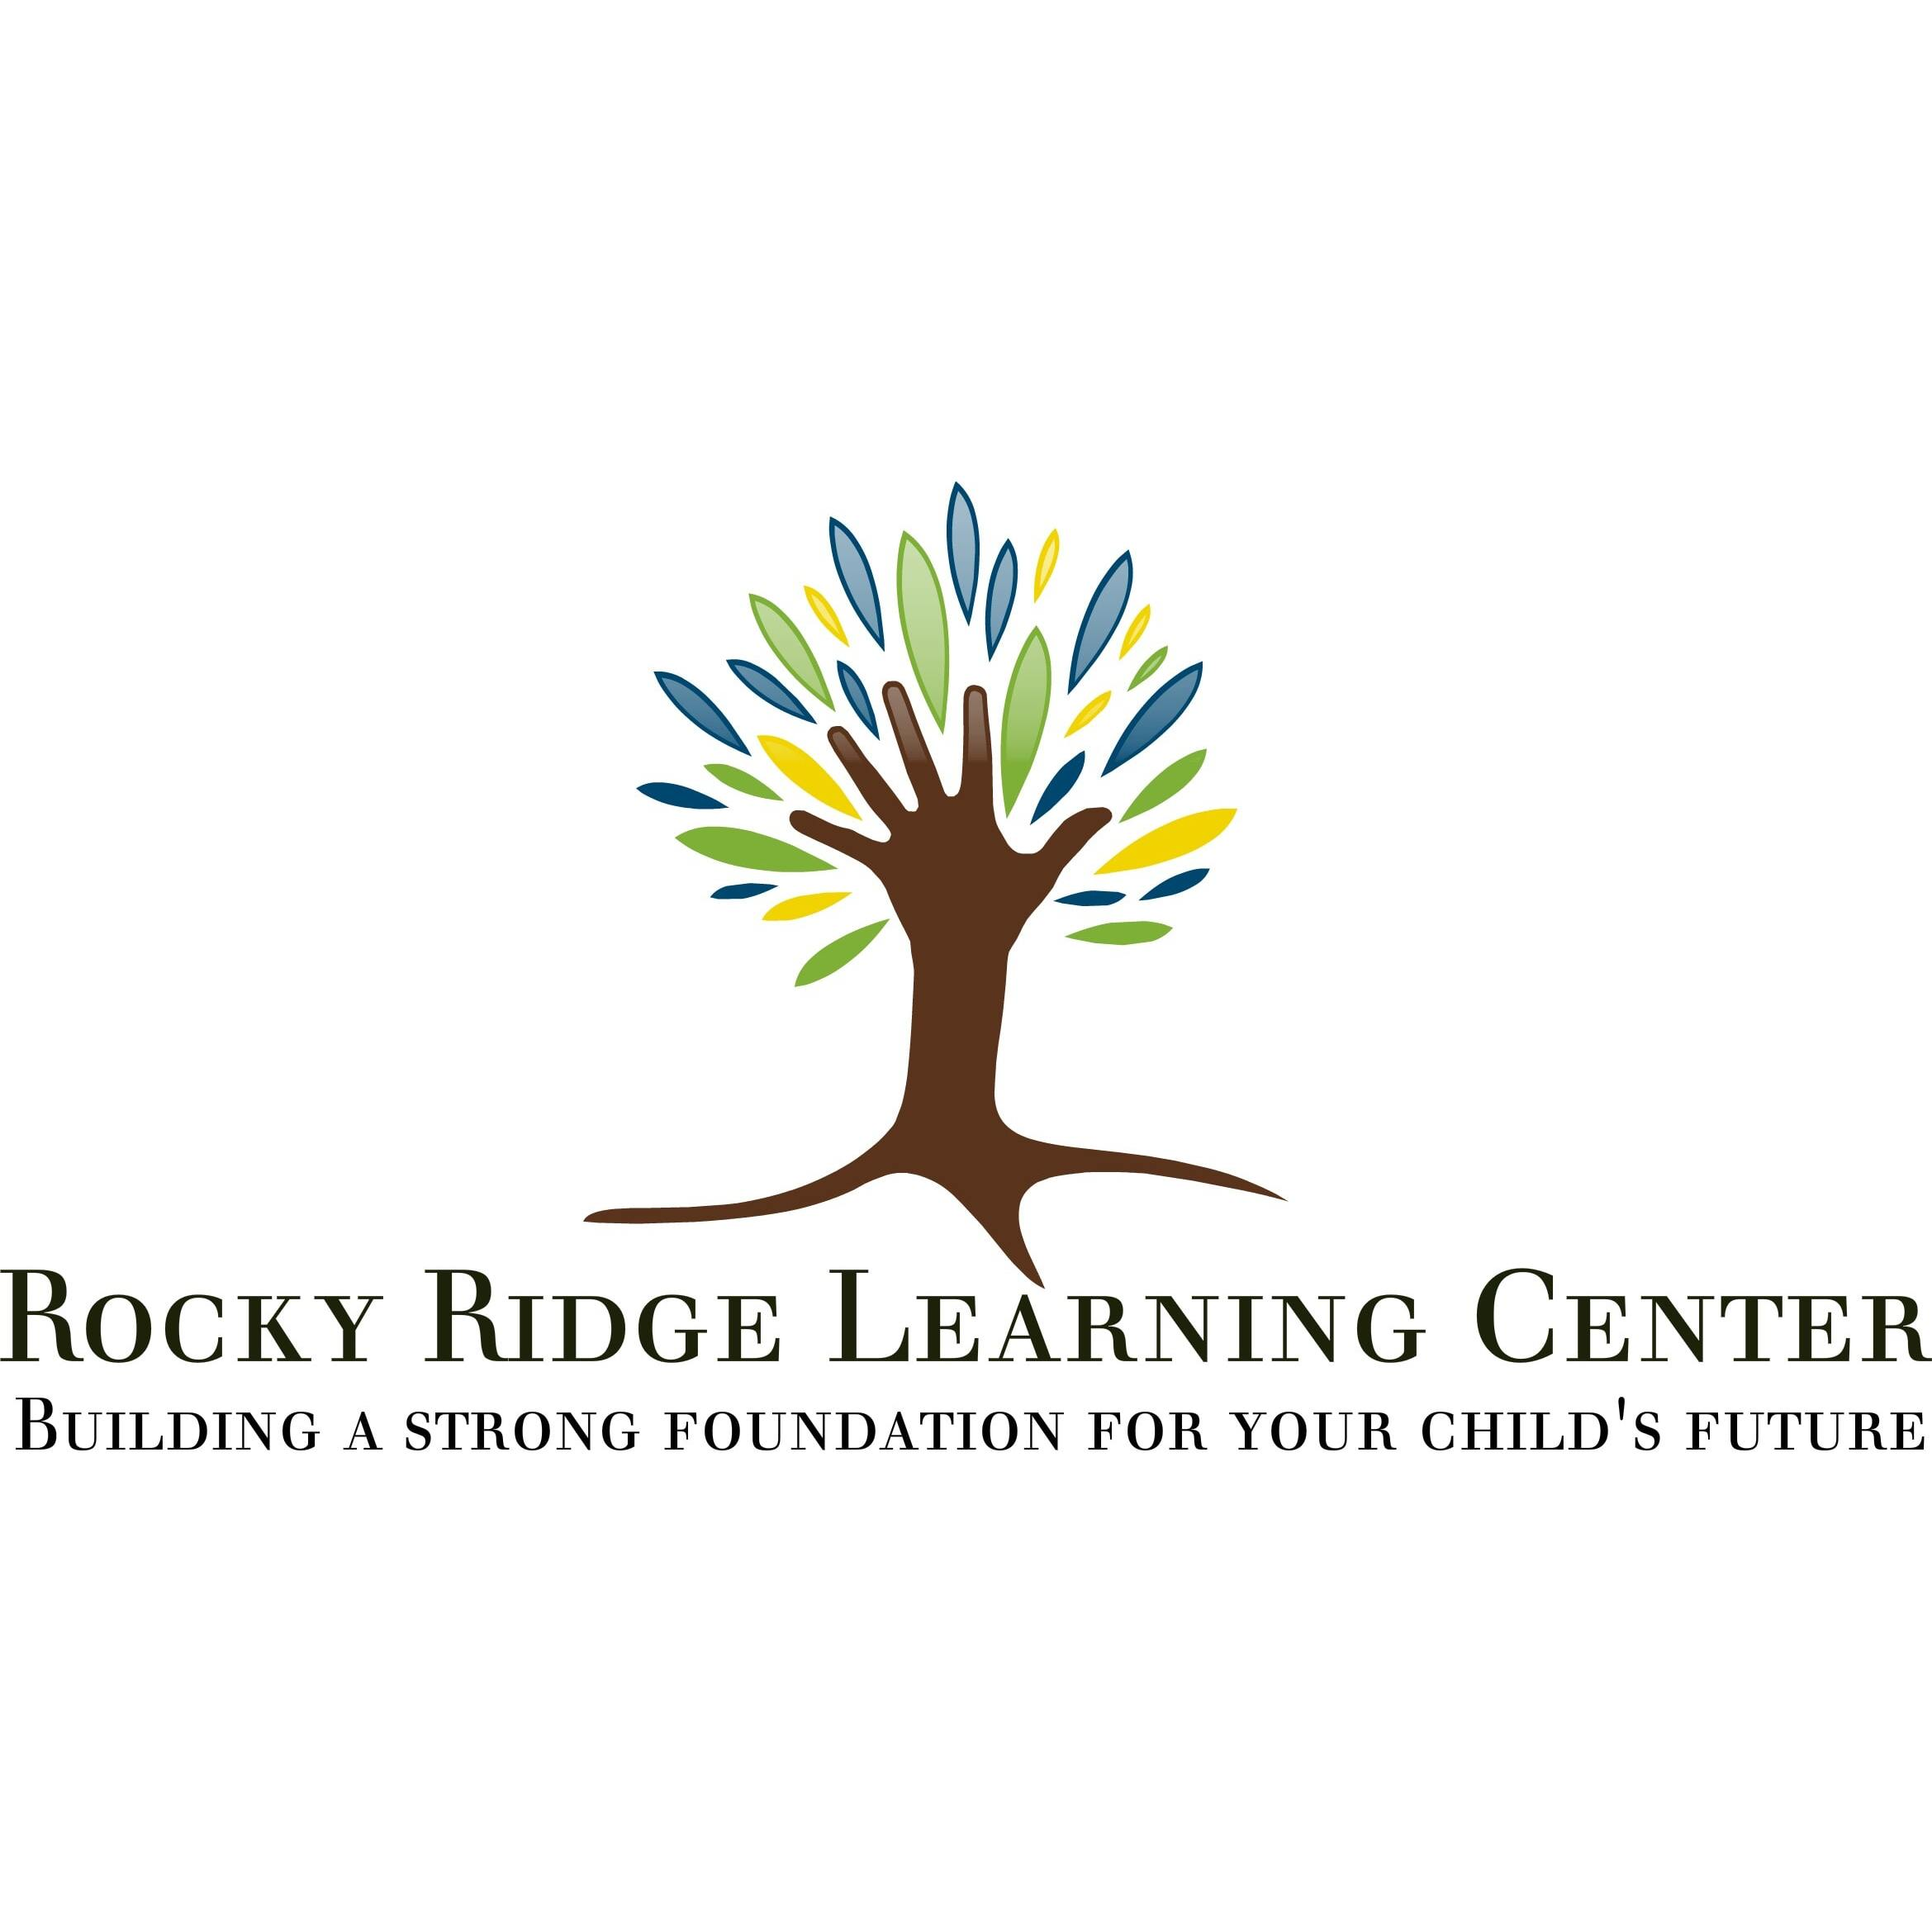 Rocky Ridge Learning Center